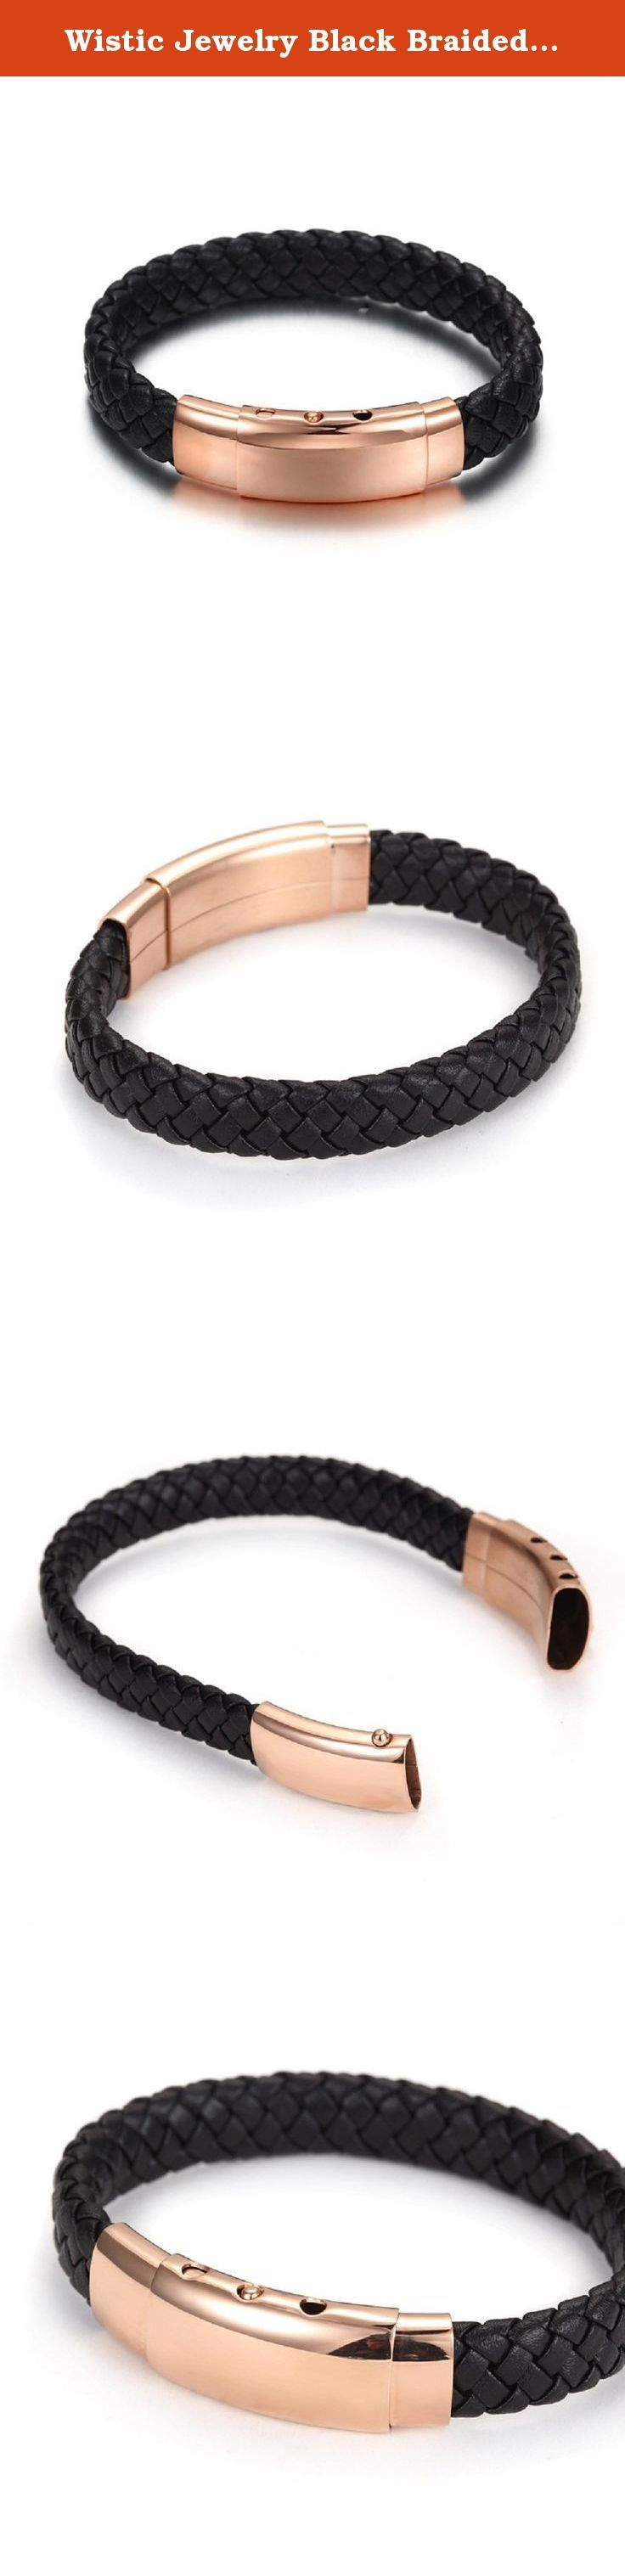 "Wistic Jewelry Black Braided Leather Bracelet for Men Genuine Leather Wristband with Clasp, 8.6"". The benefit of Stainless Steel Jewellery: Stainless Steel Jewellery does not tarnish and oxidize, which can last longer than other jewelries. It is able to endure a lot of wear and tear. And it is amazingly hypoallergenic. Such advantages make it a more popular accessory. Wistic Jewellery Service: Simply wash your product in warm water and soap or detergent, rinse and dry with a soft cloth as..."